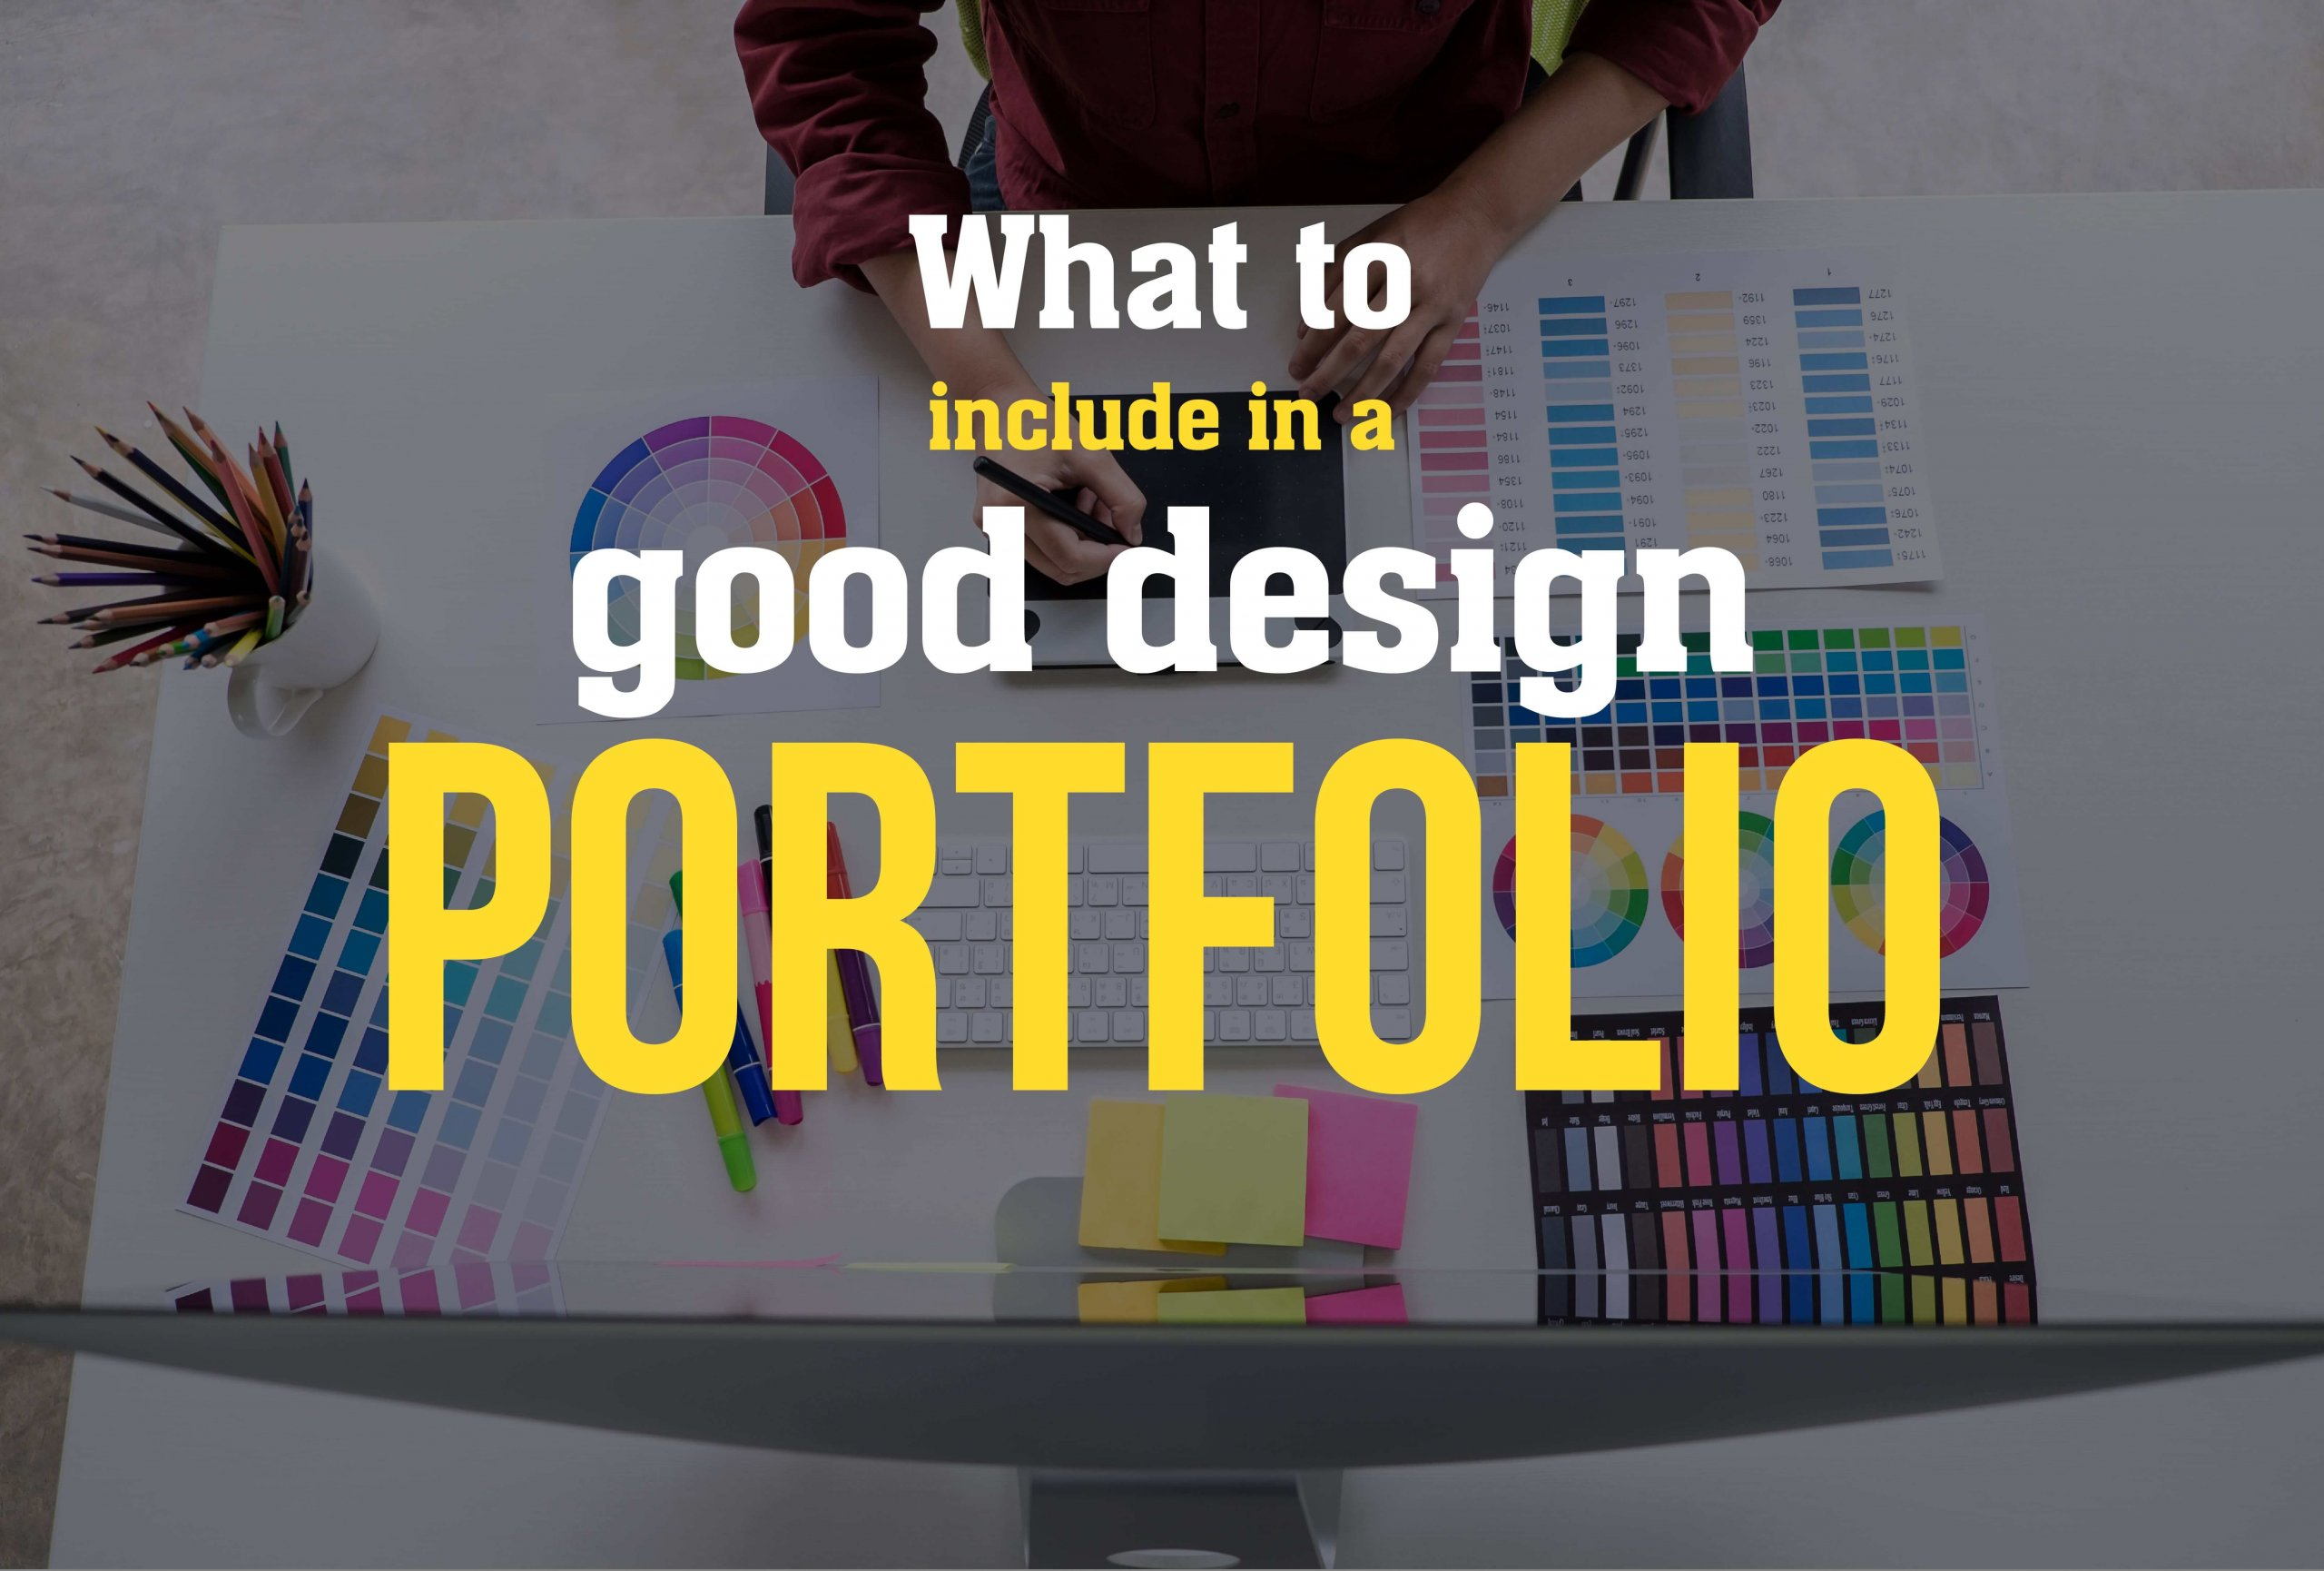 What to include in a good design portfolio